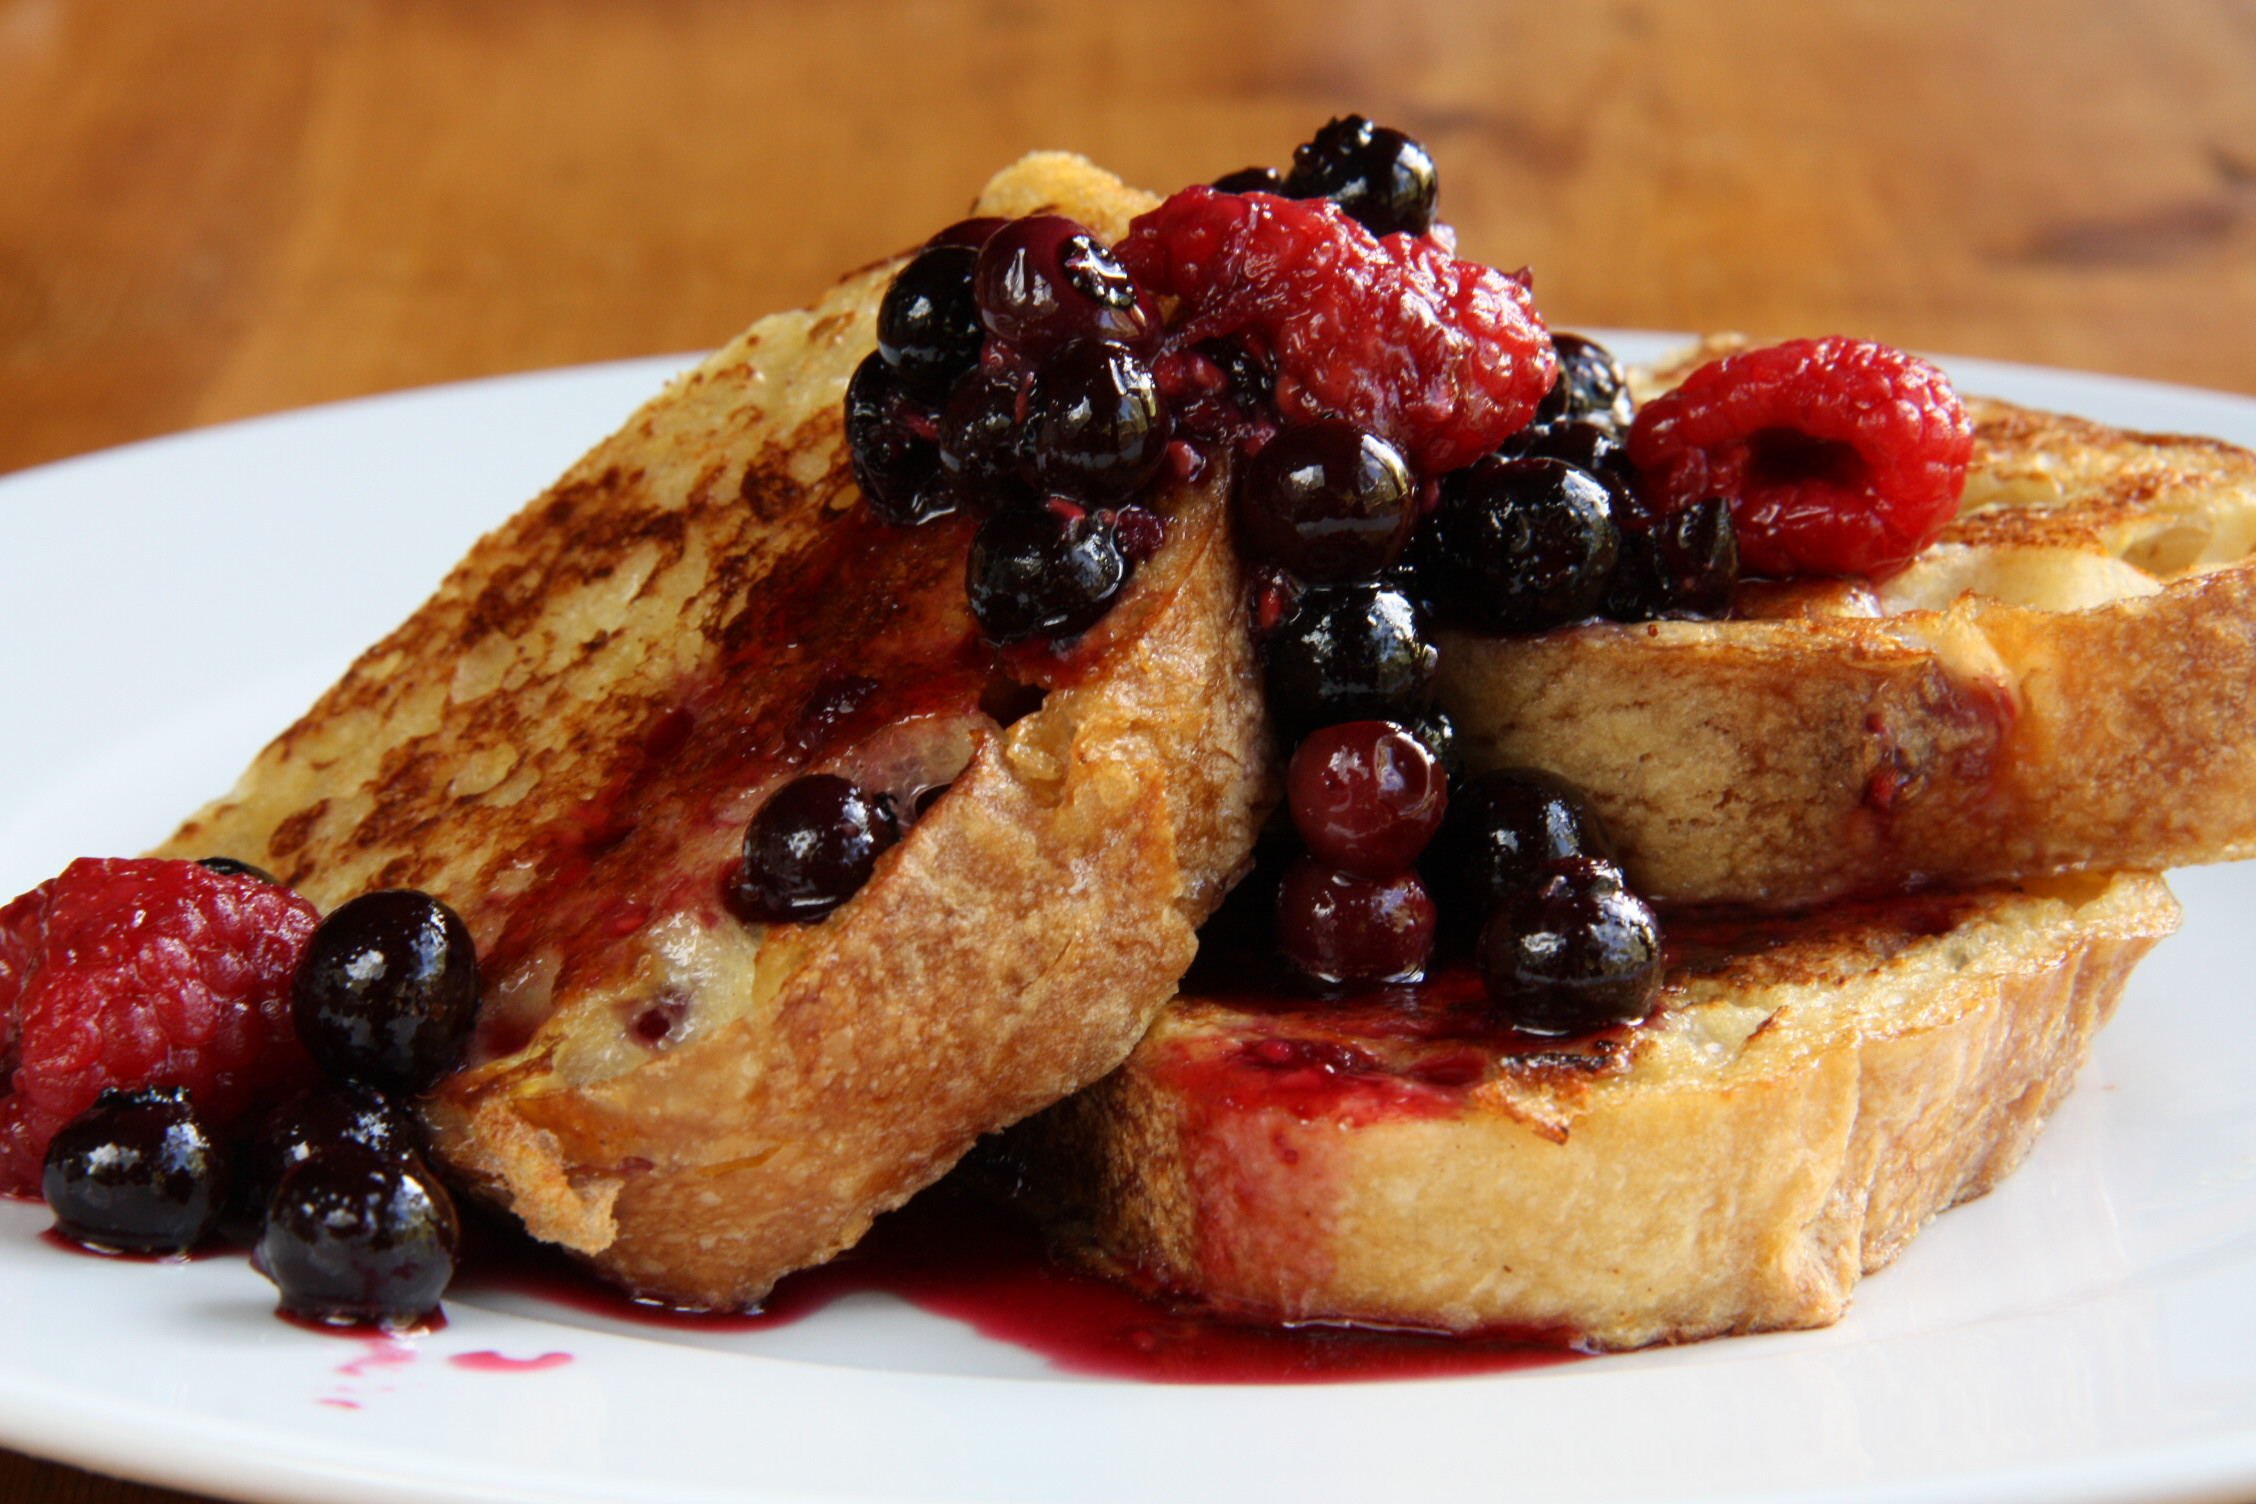 French toast, also known as eggy bread or gypsy toast, is a dish of ...